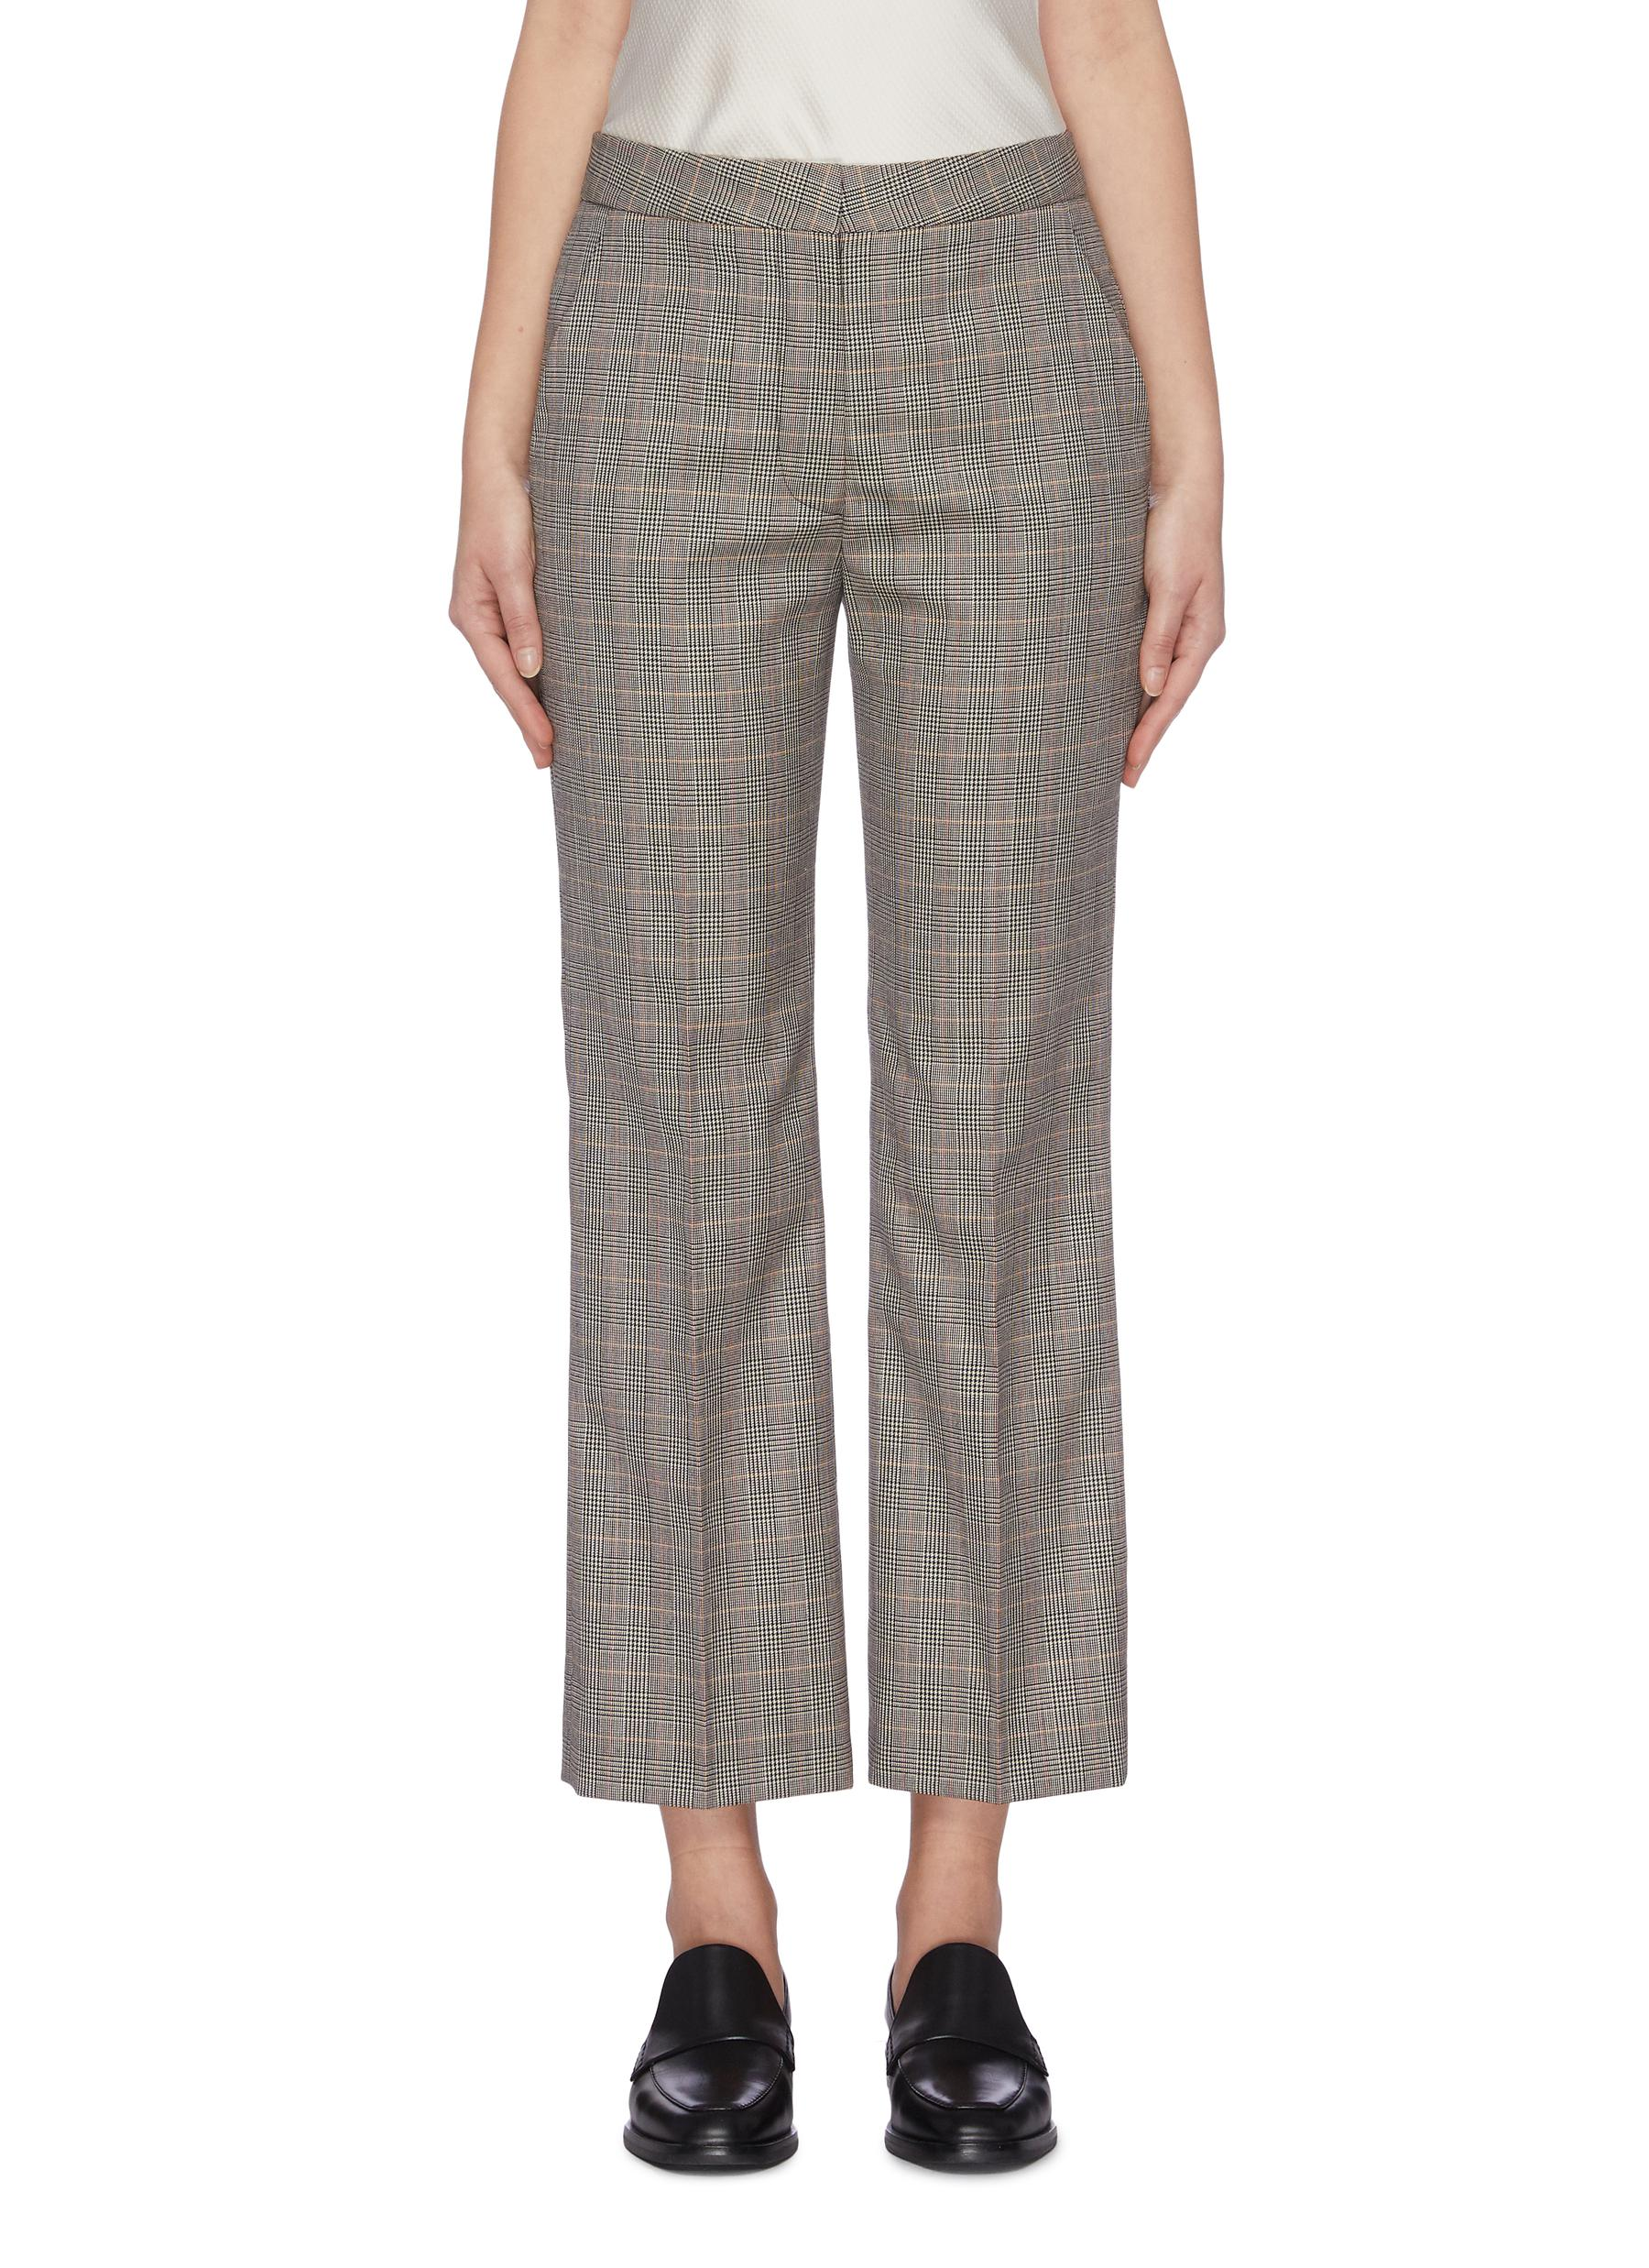 Houndstooth check plaid suiting pants by Stella Mccartney